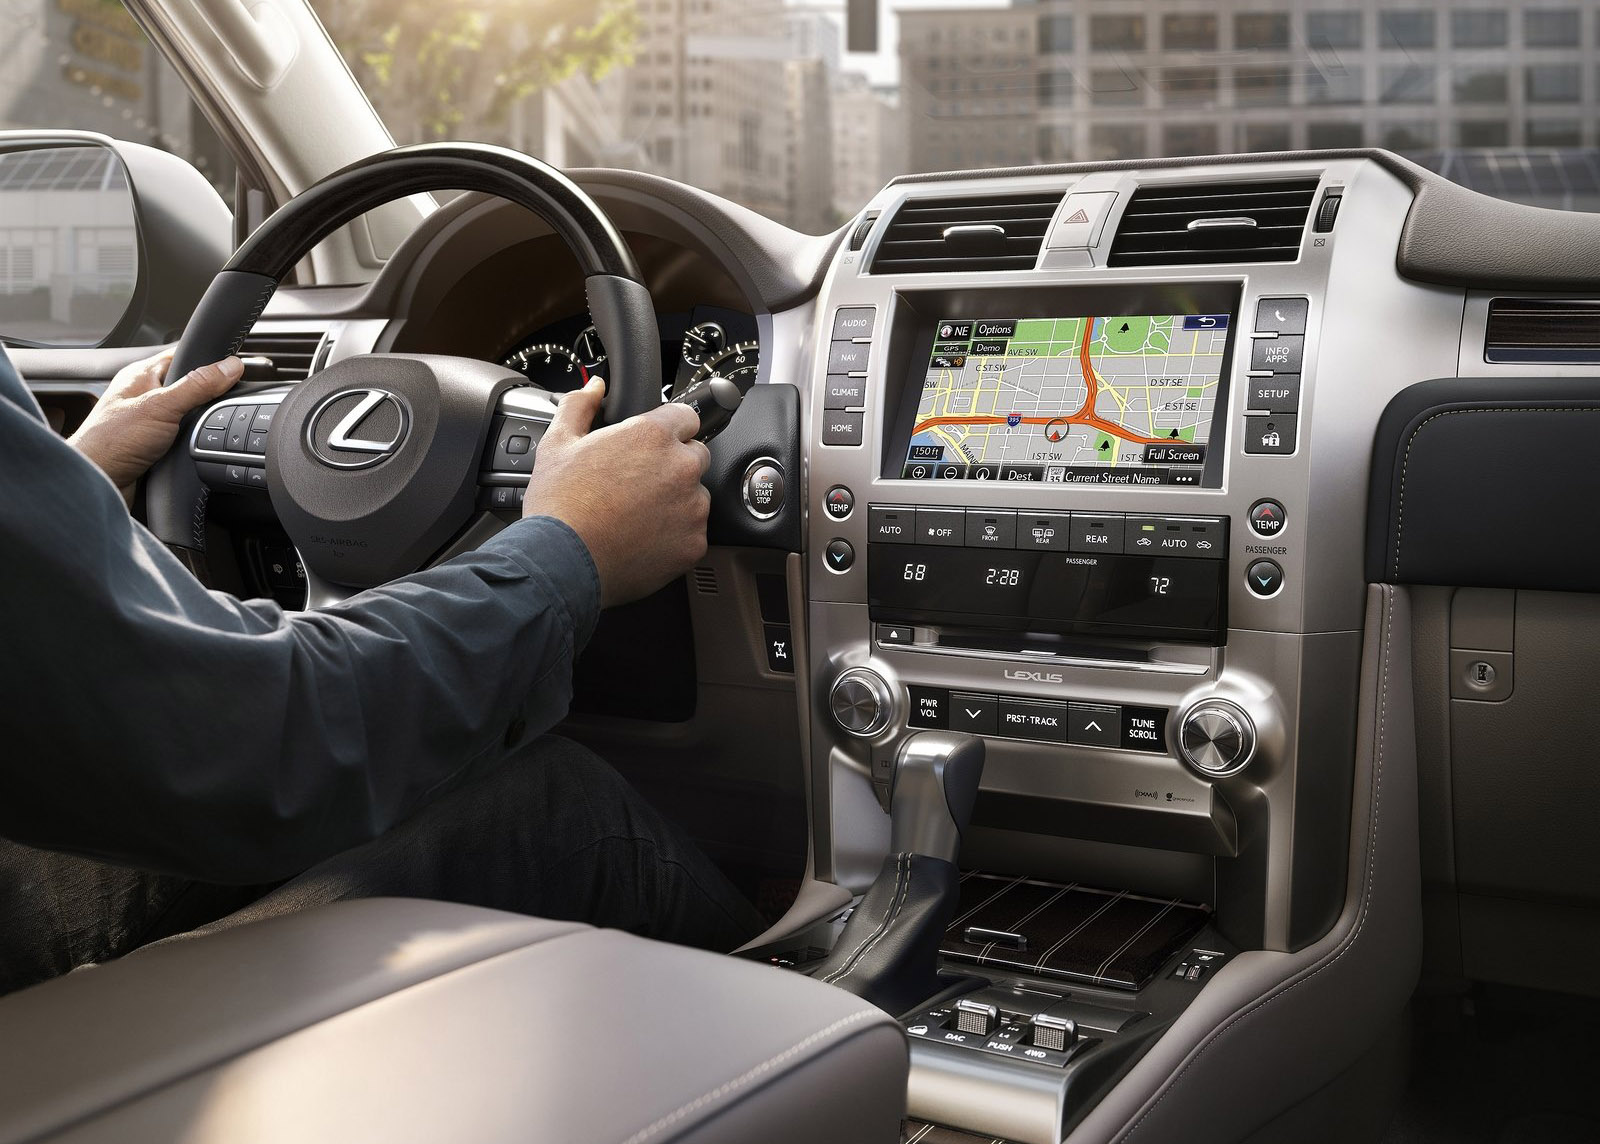 2021 Lexus Gx Specs and Review